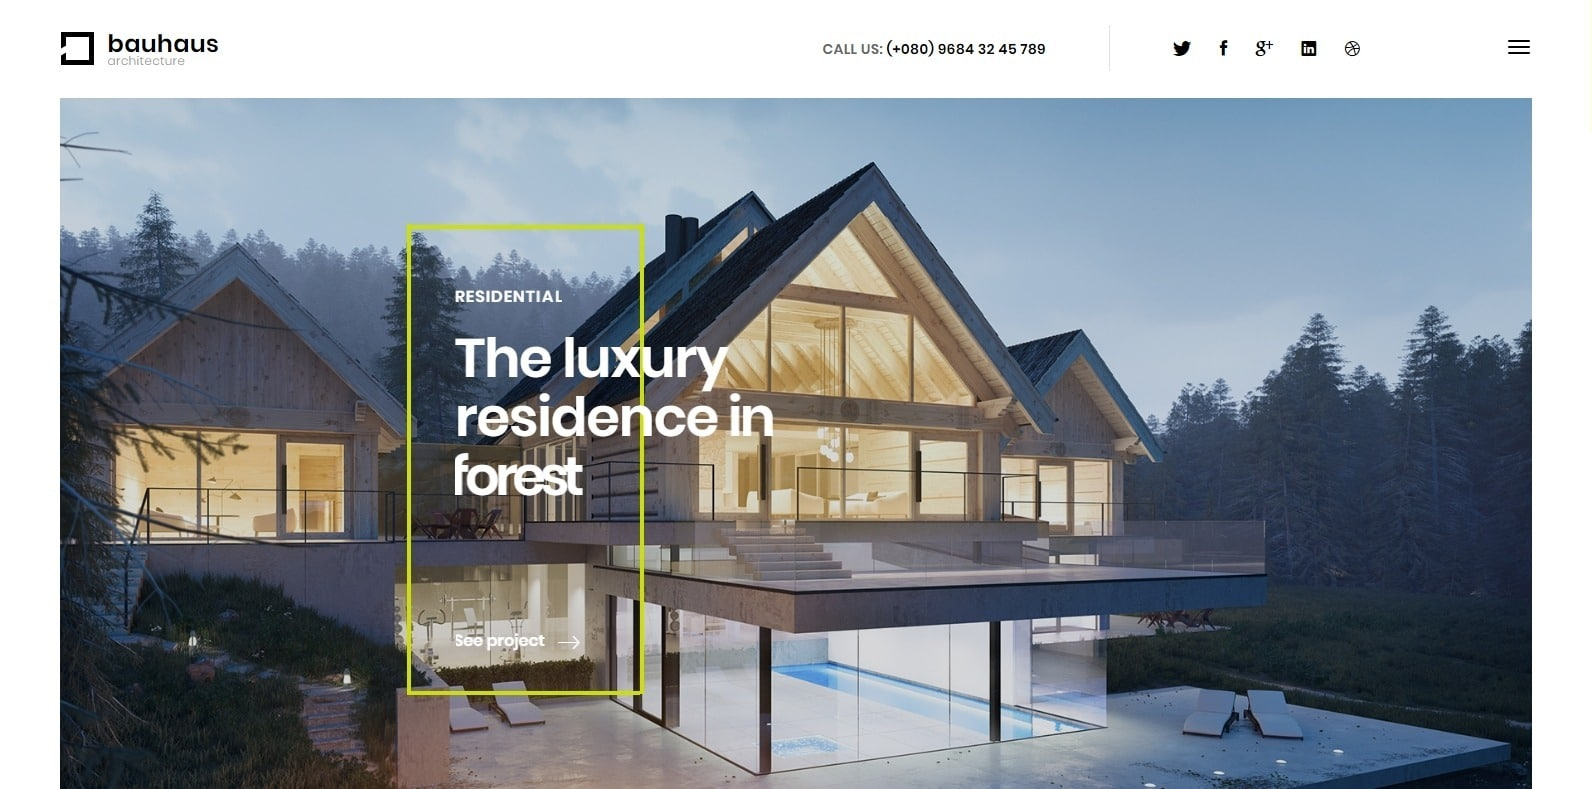 bauhus-interior-design-template